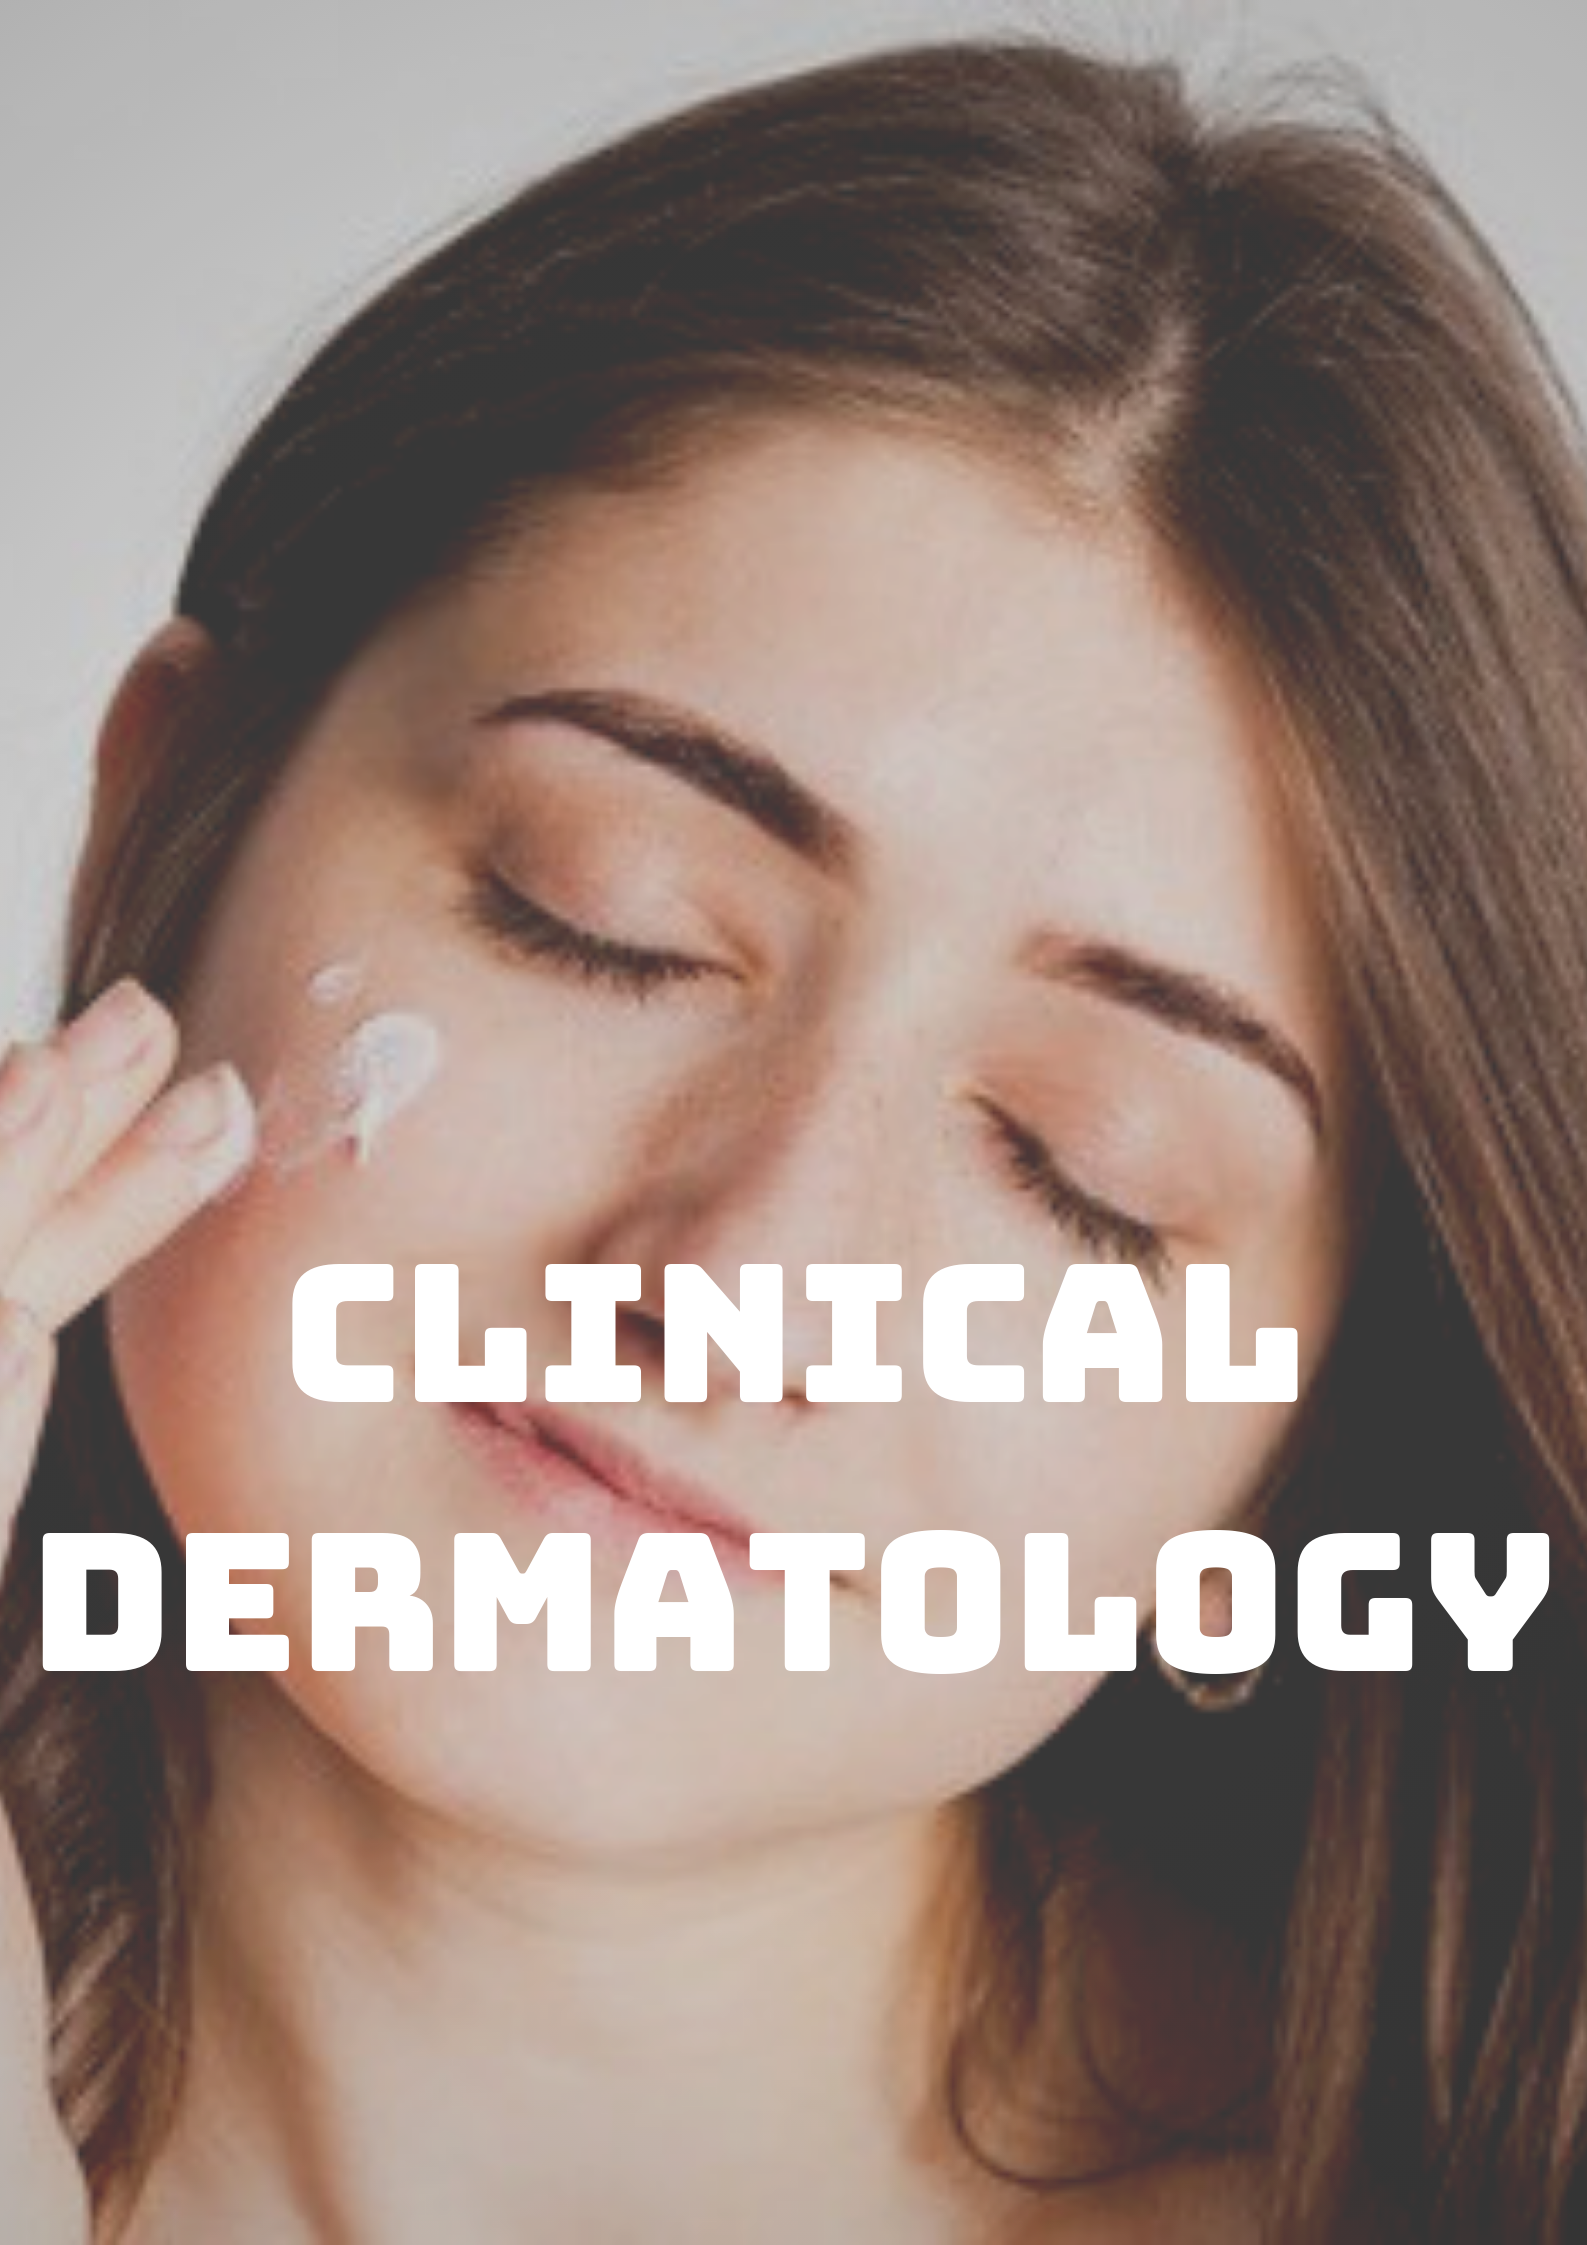 Clinical Dermatology Photo